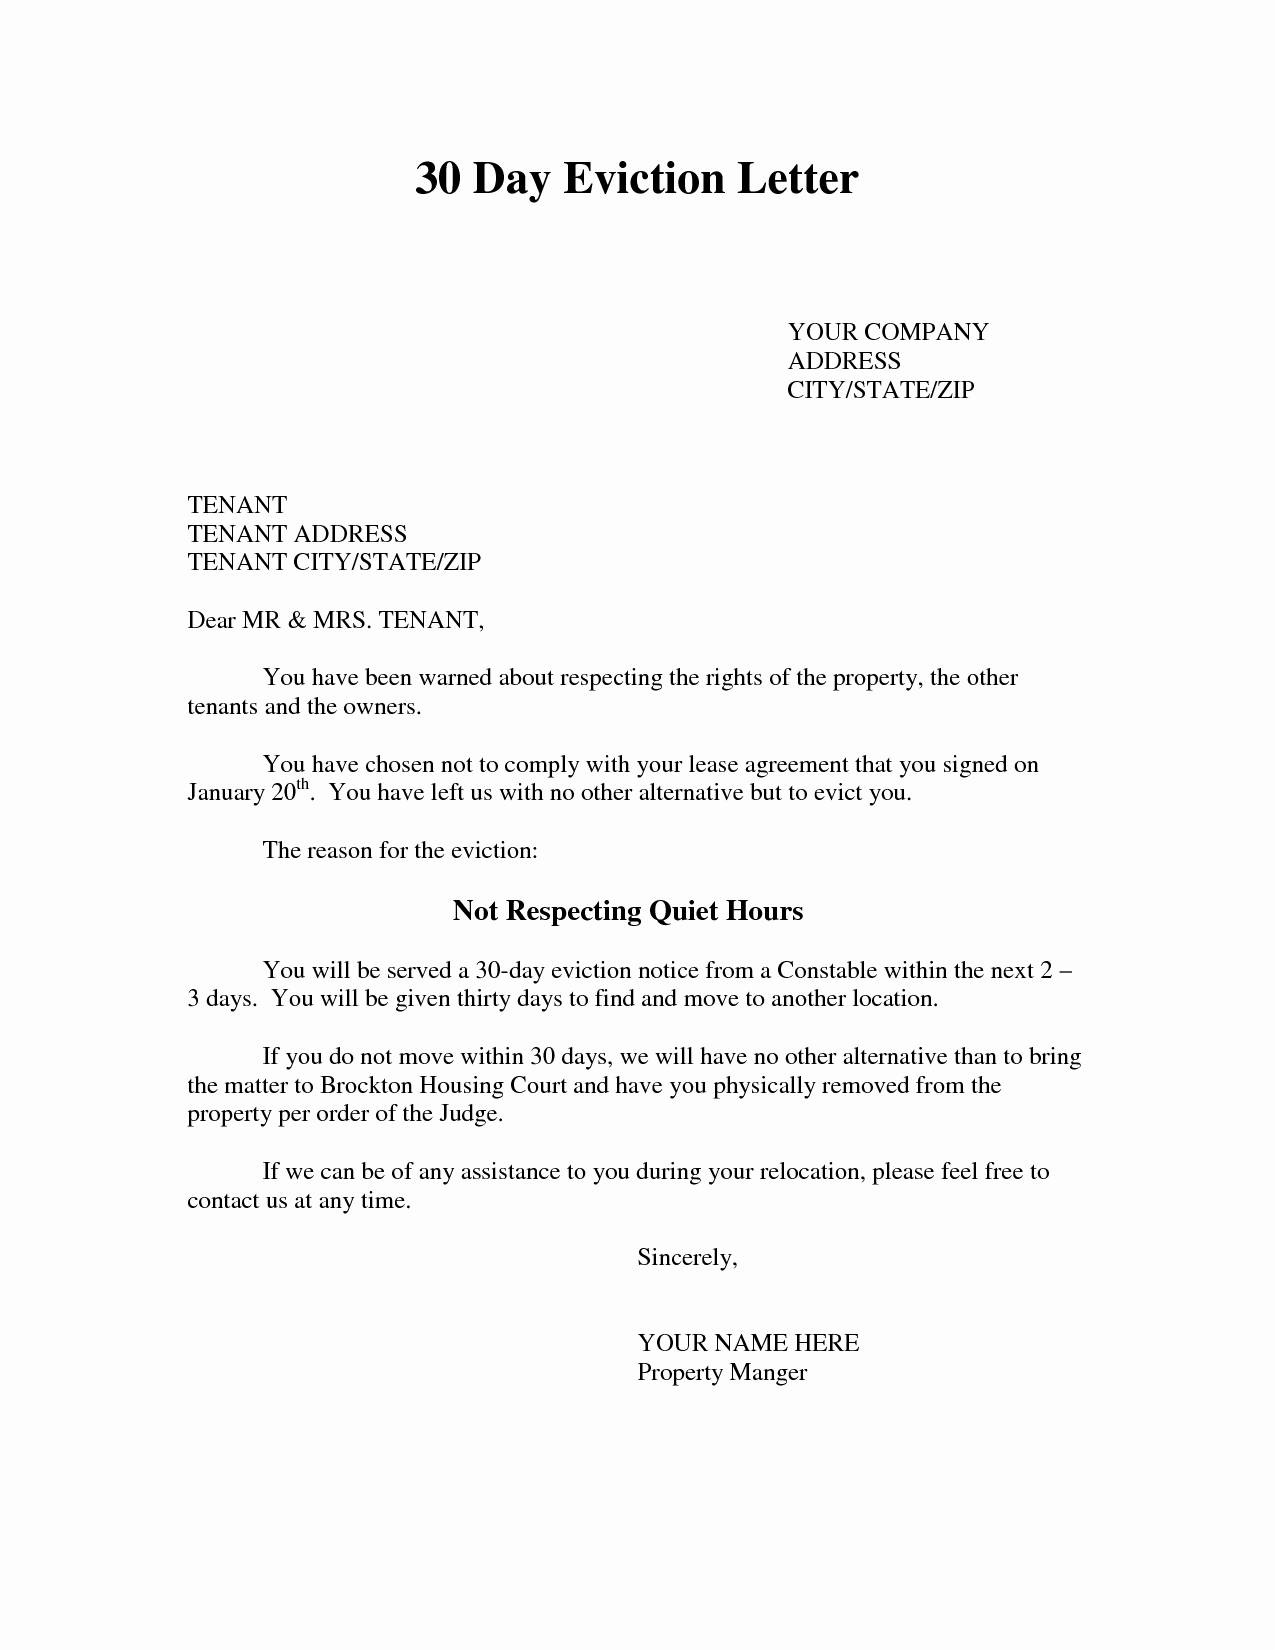 Landlord Eviction Letter Template - Tenant Eviction Letter Template Fresh Eviction Notice Template